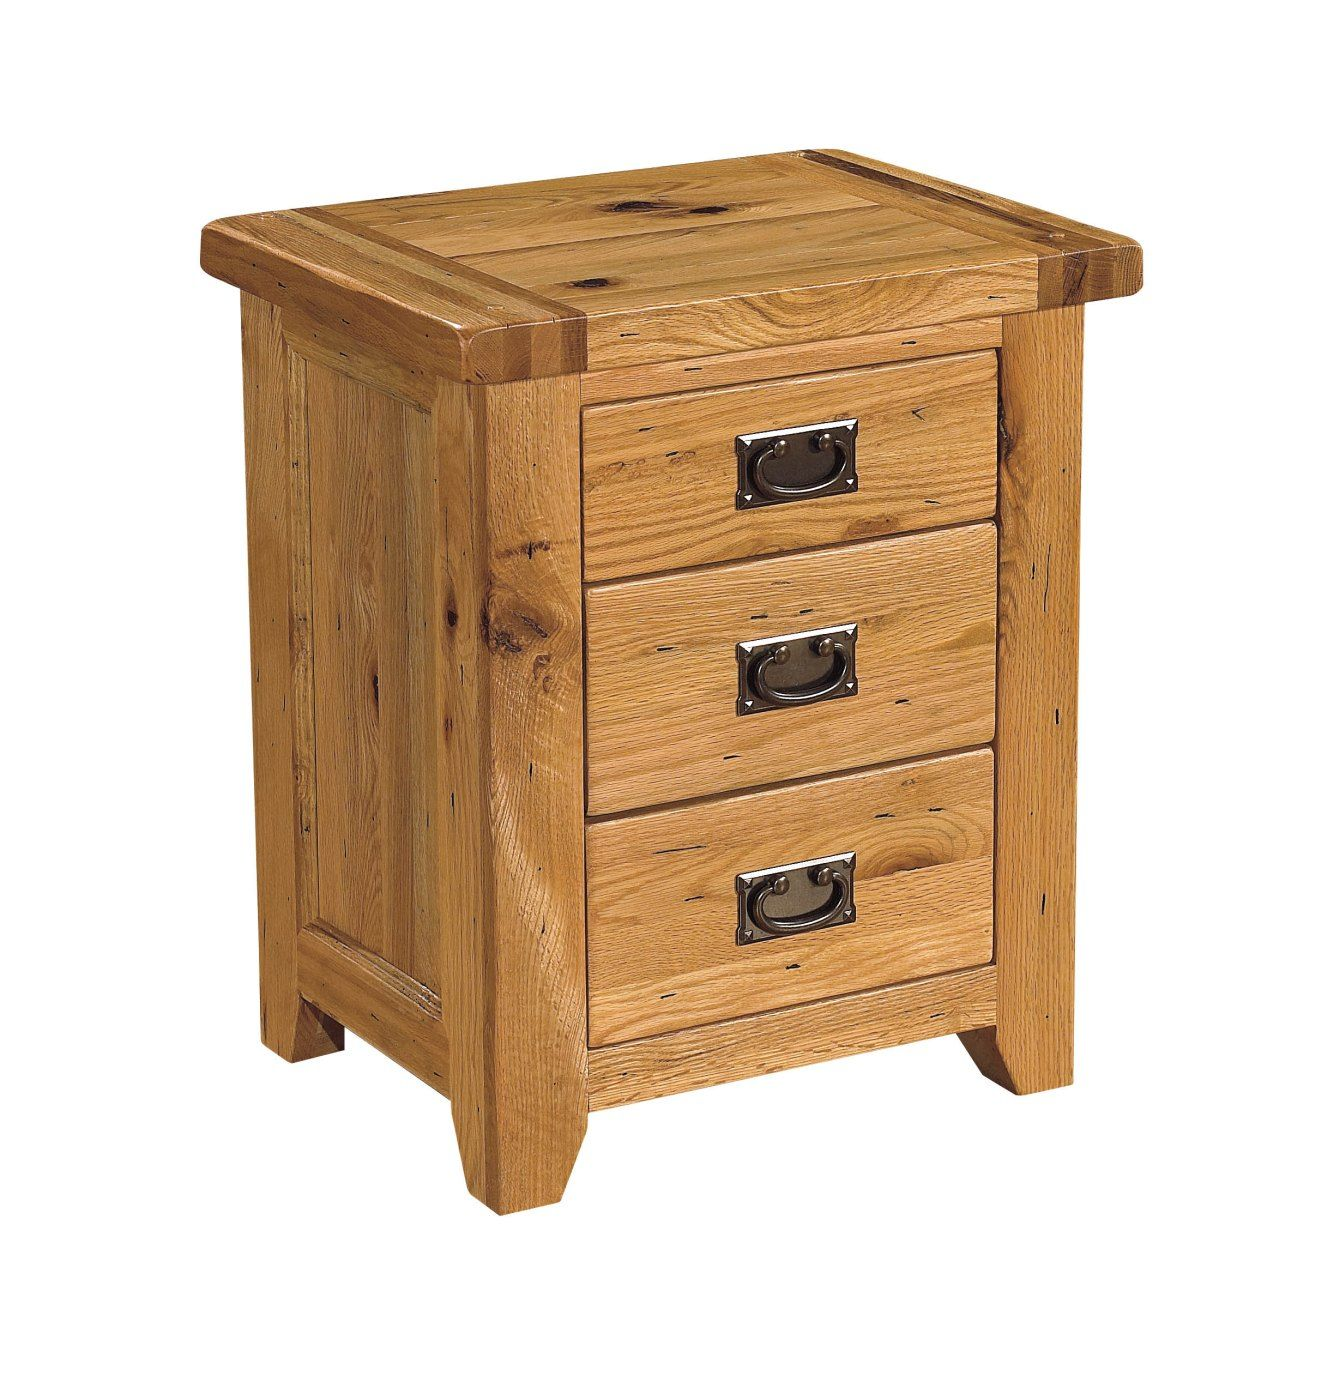 Tuscany solid oak bedroom furniture three drawer bedside cabinet